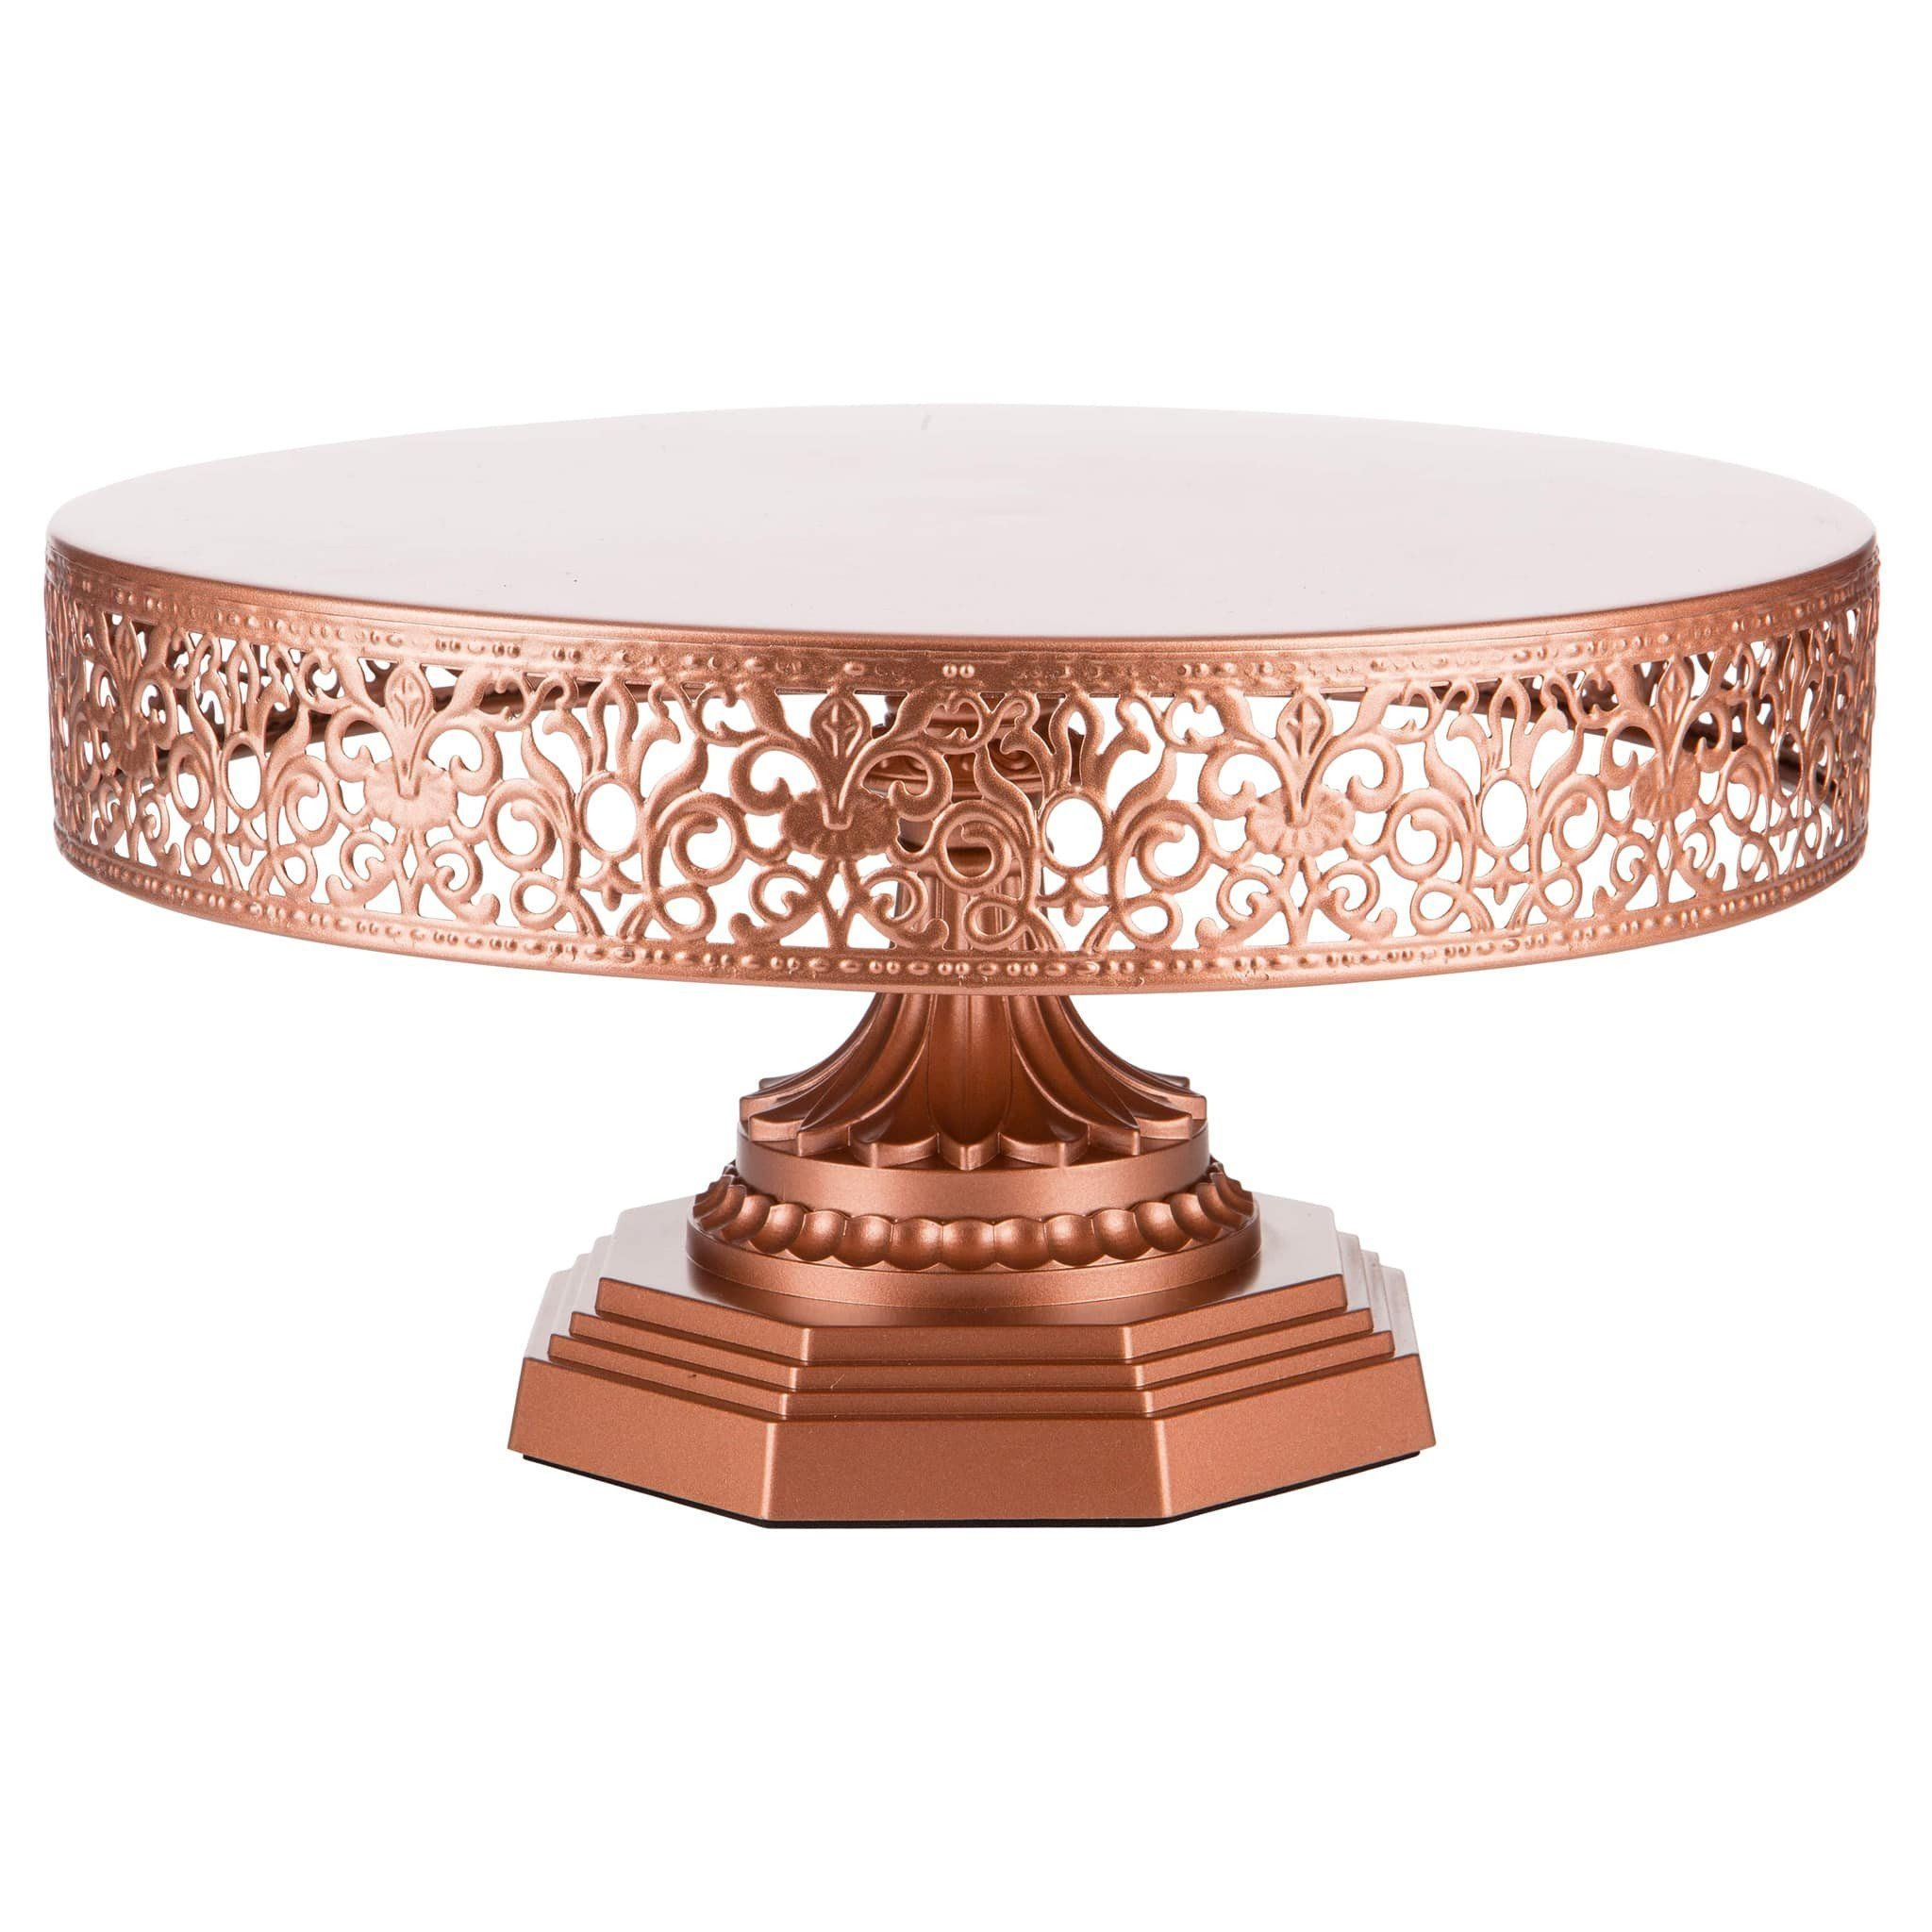 12 Inch Round Metal Wedding Cake Stand Rose Gold Rose Gold Kitchen Rose Gold Decor Metal Cake Stand